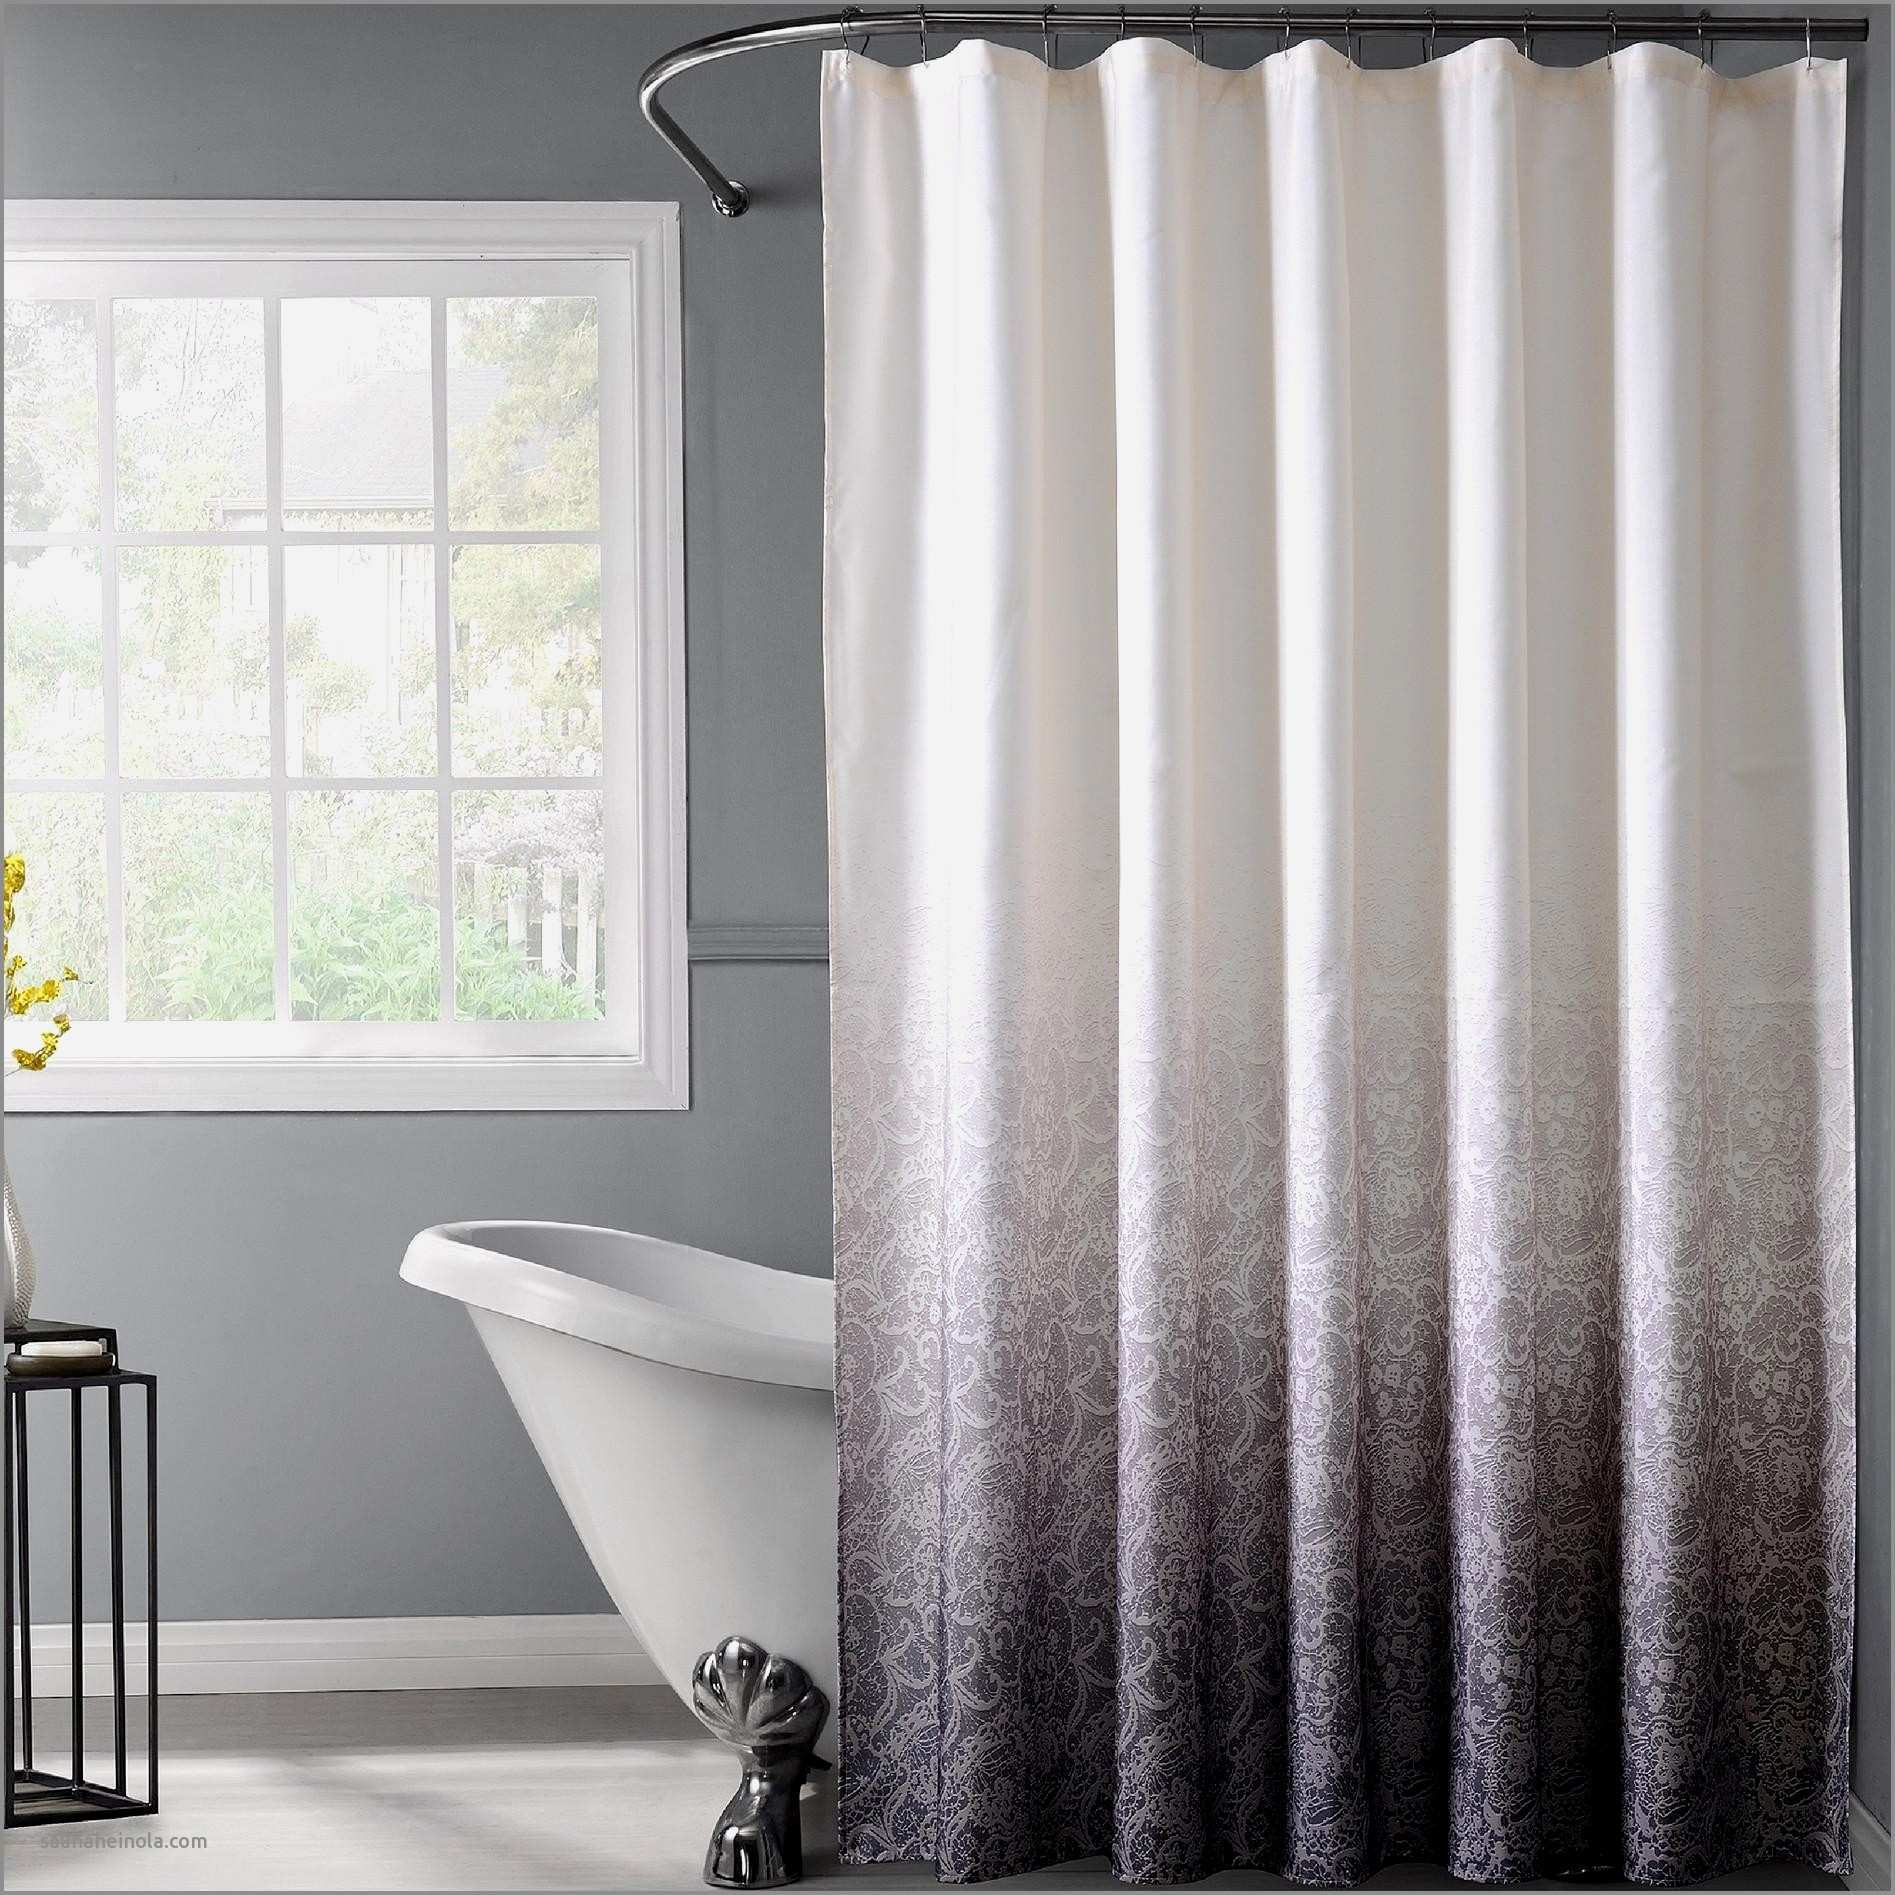 33 Lovely Country themed Shower Curtain